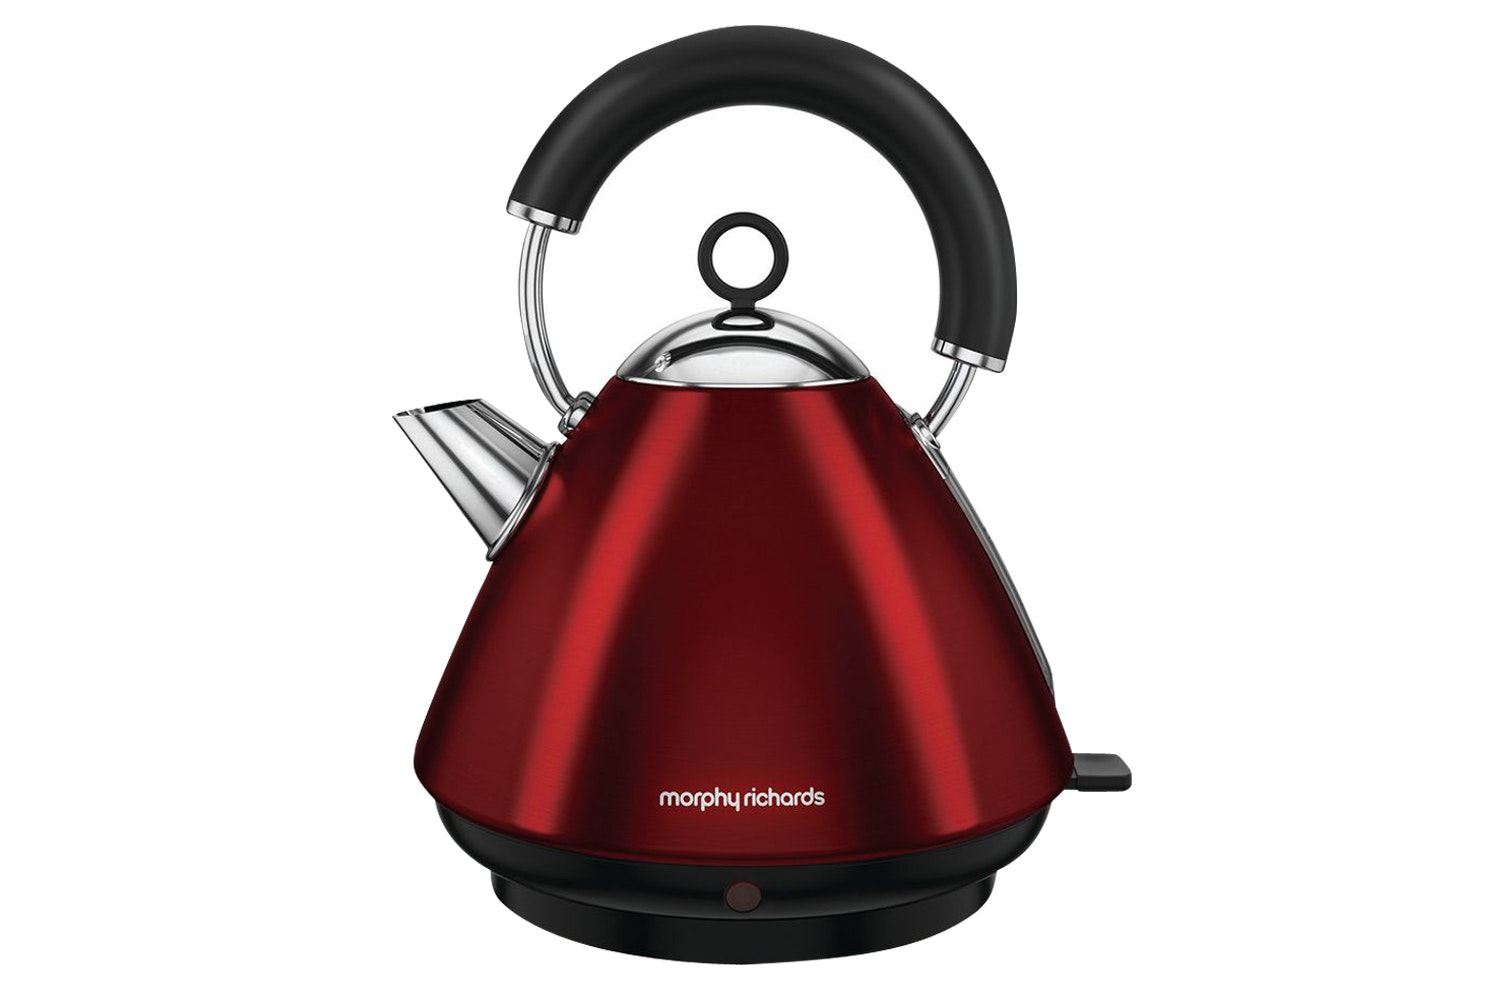 Morphy Richards Accents 1.5L Kettle | 102029 | Red